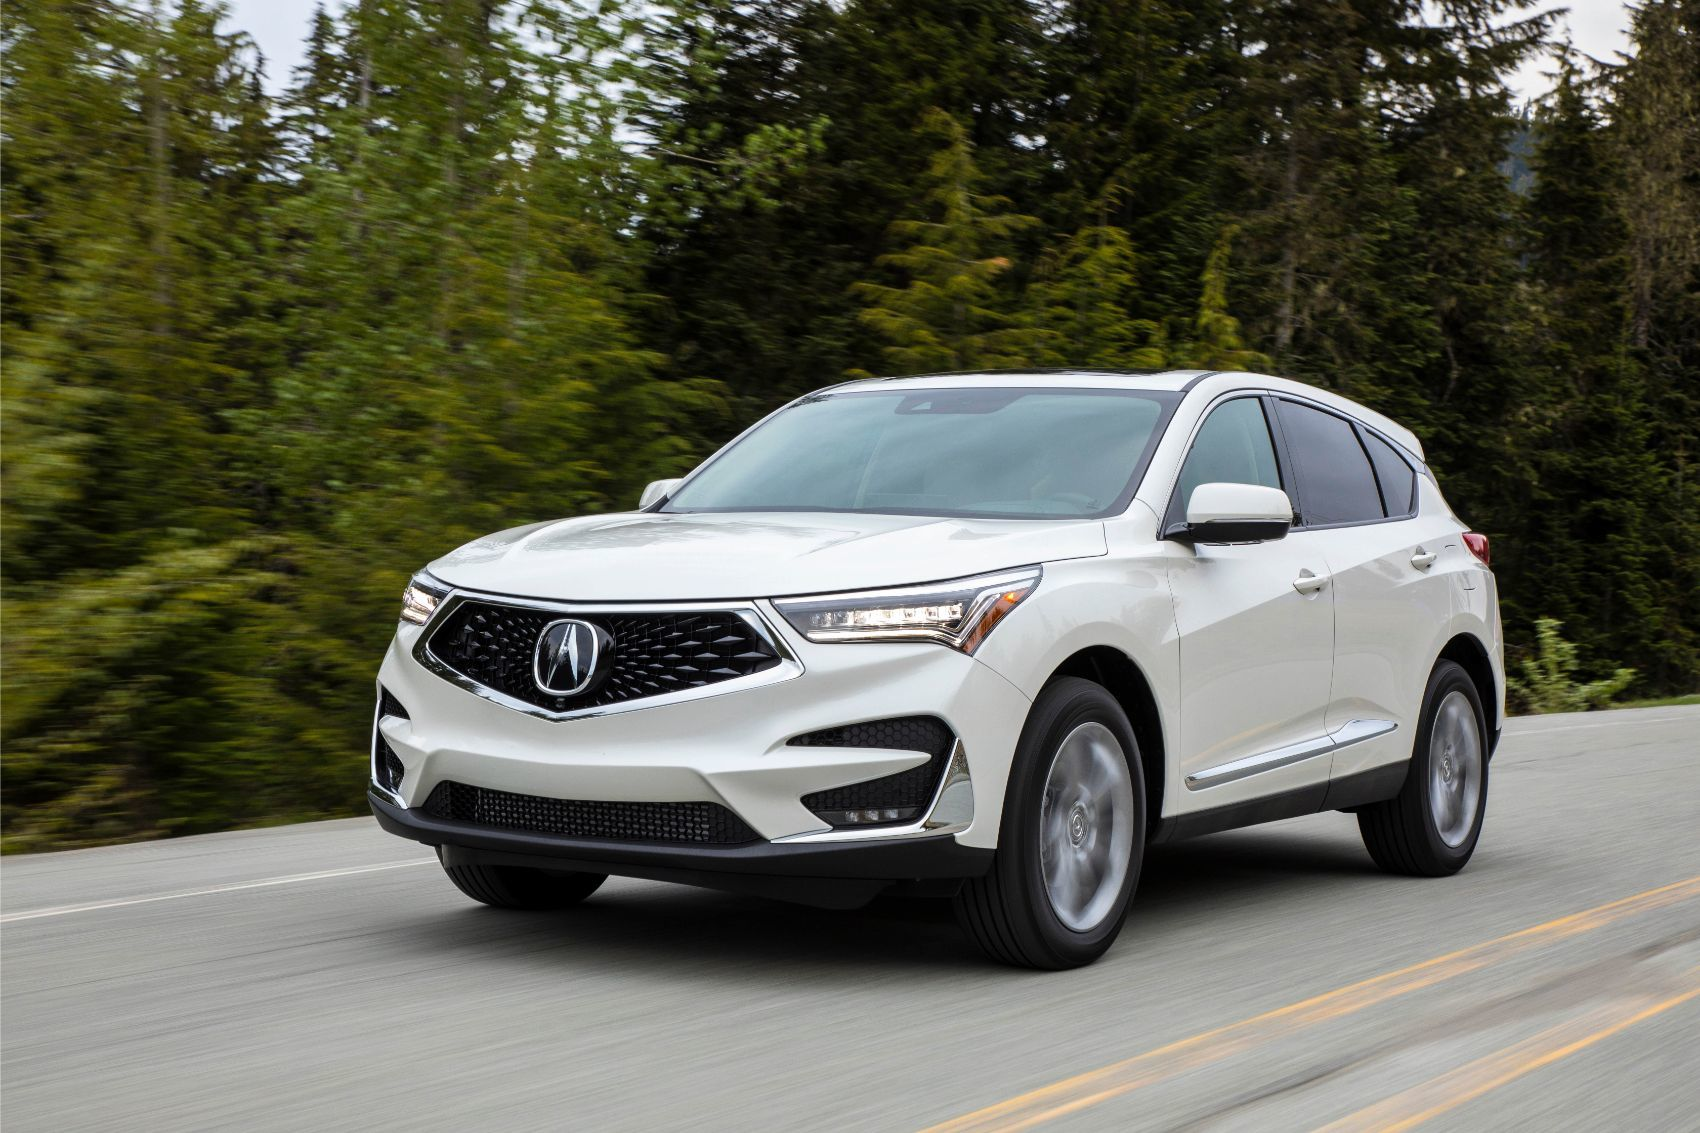 41 All New Acura Mdx 2020 Changes Prices